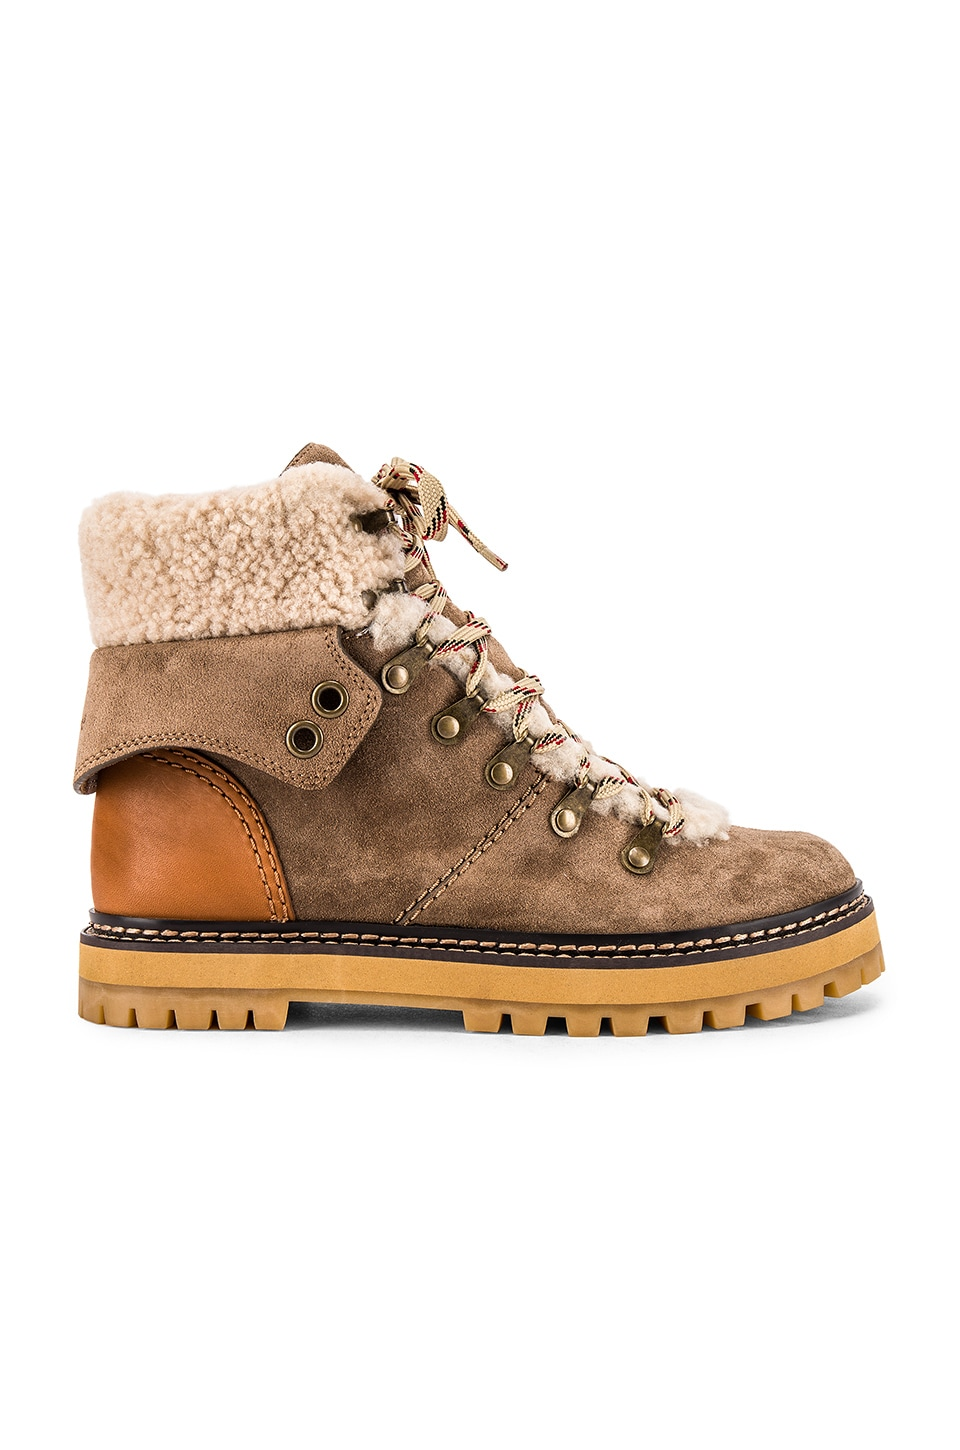 See By Chloe Eileen Boot in Taupe, Natural Calf & Shearling